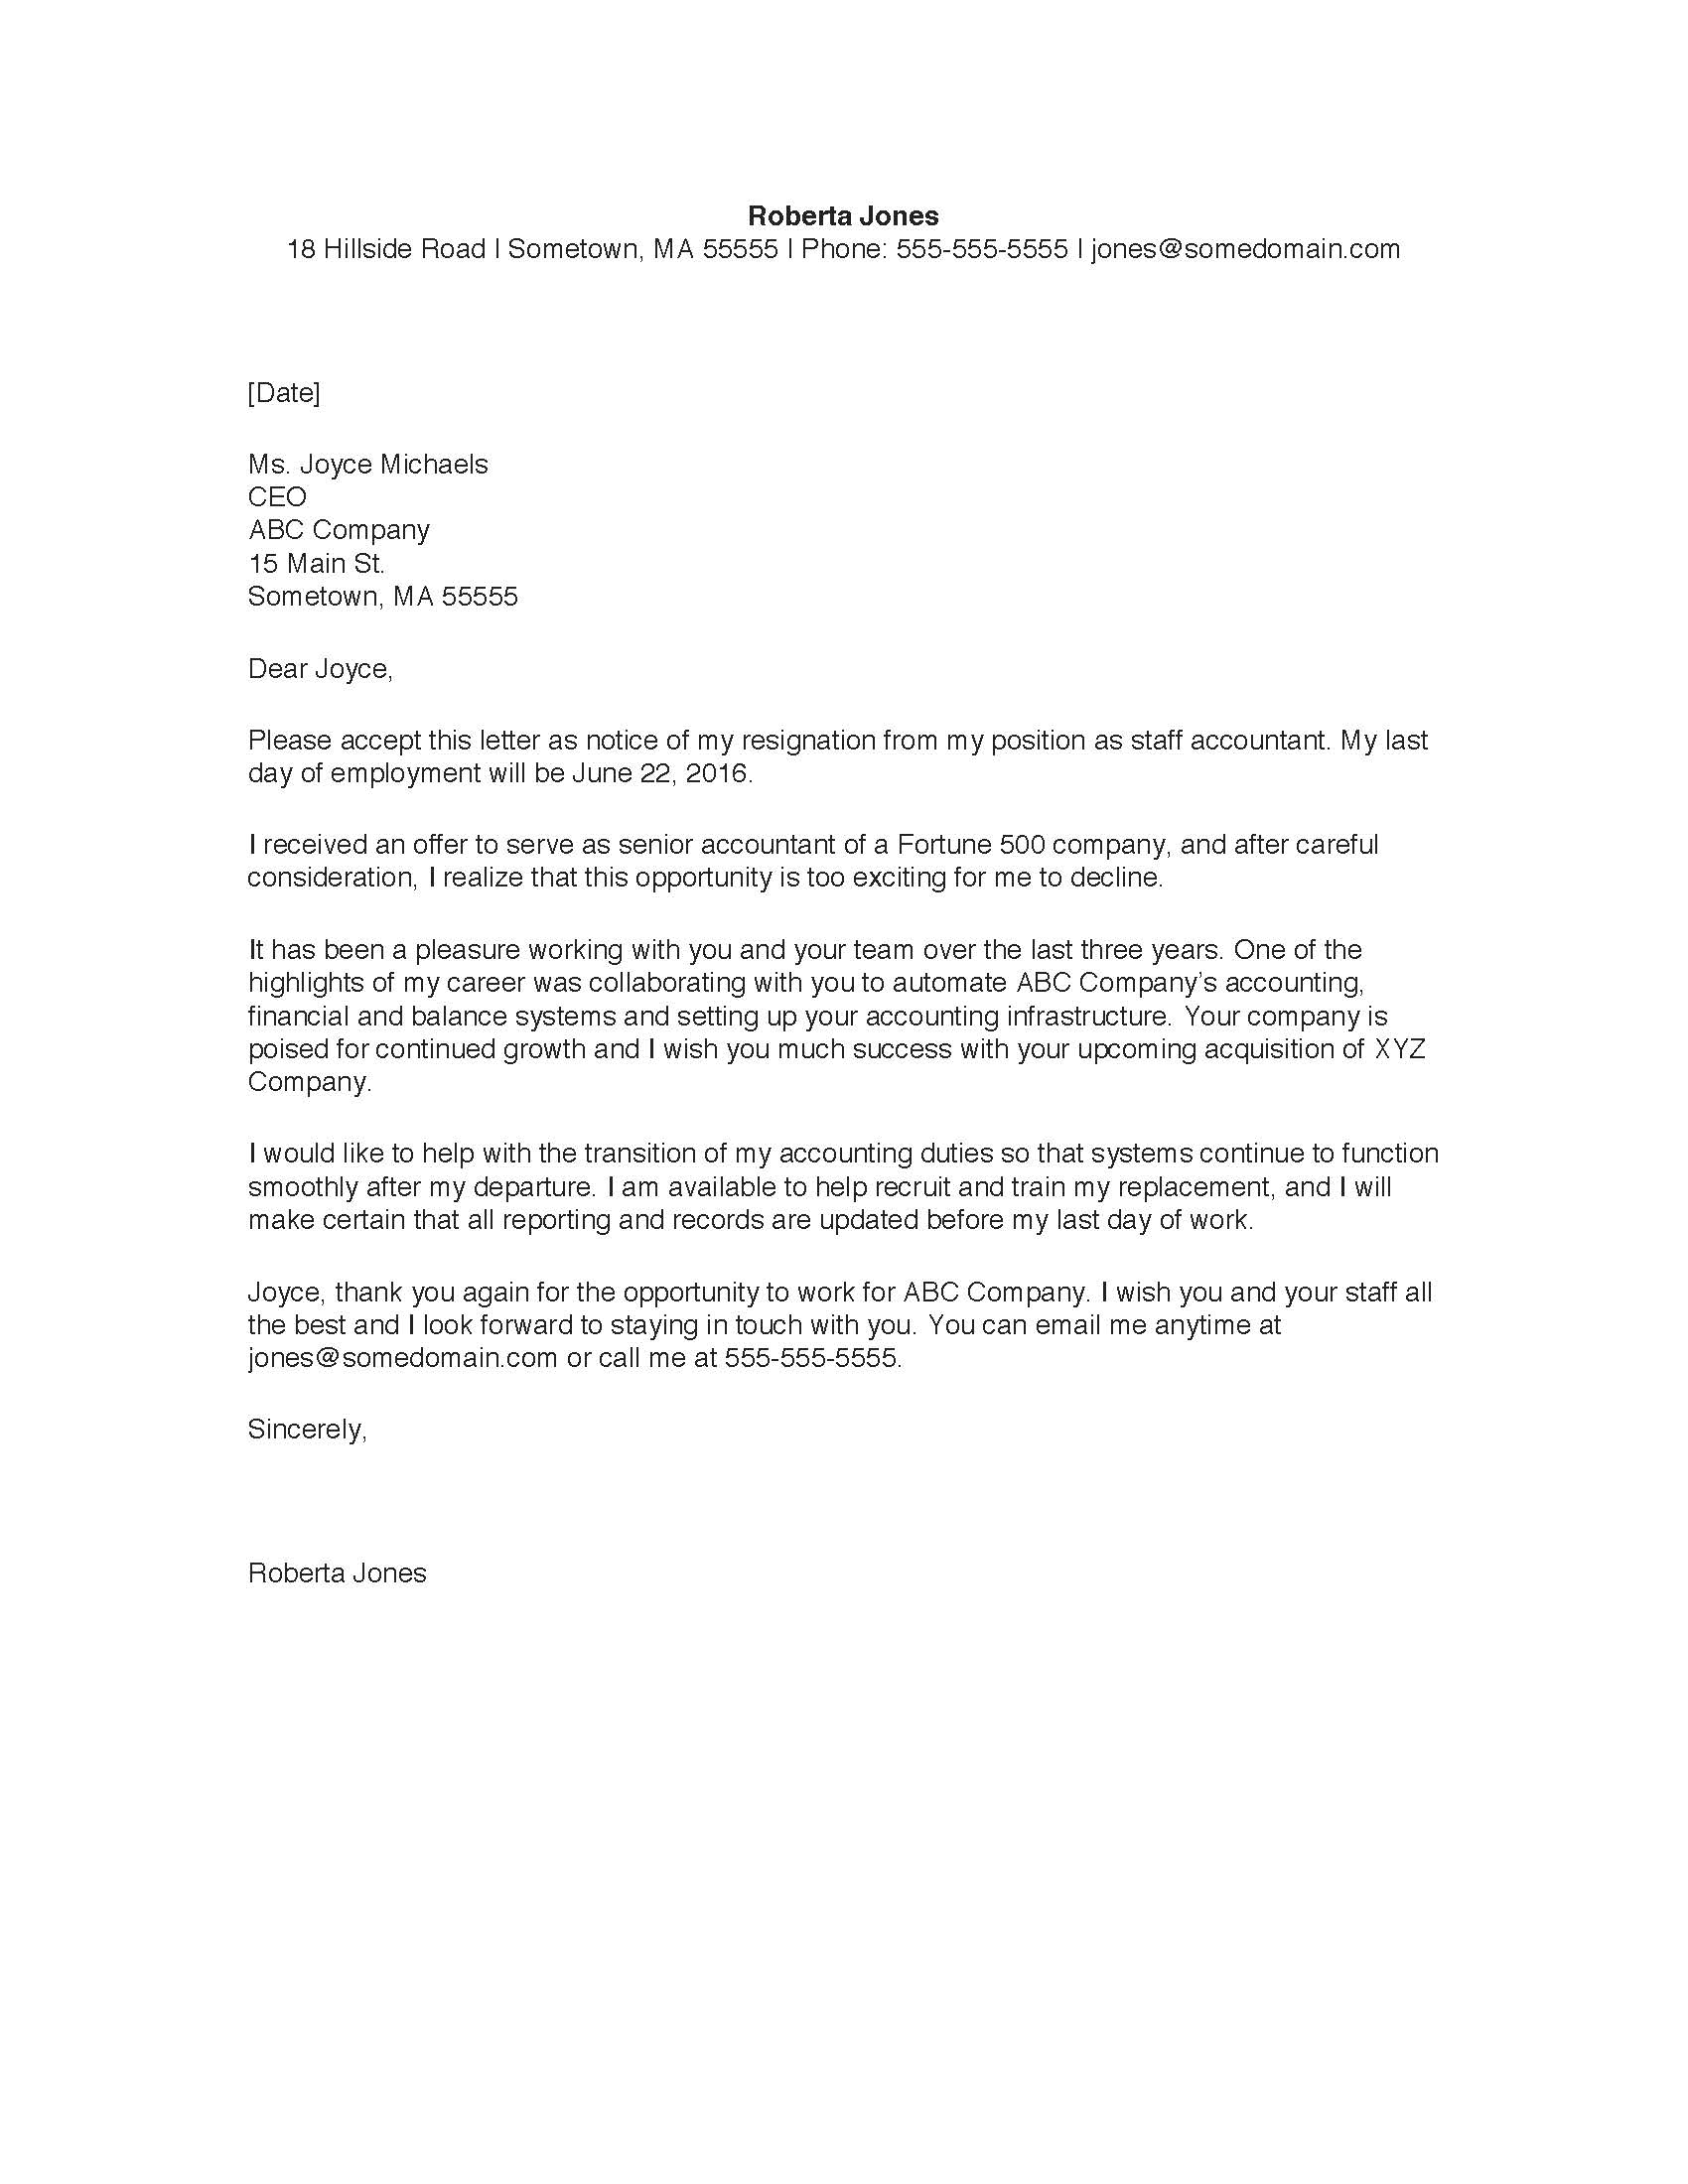 Resignation notice templates morenpulsar resignation notice templates expocarfo Choice Image